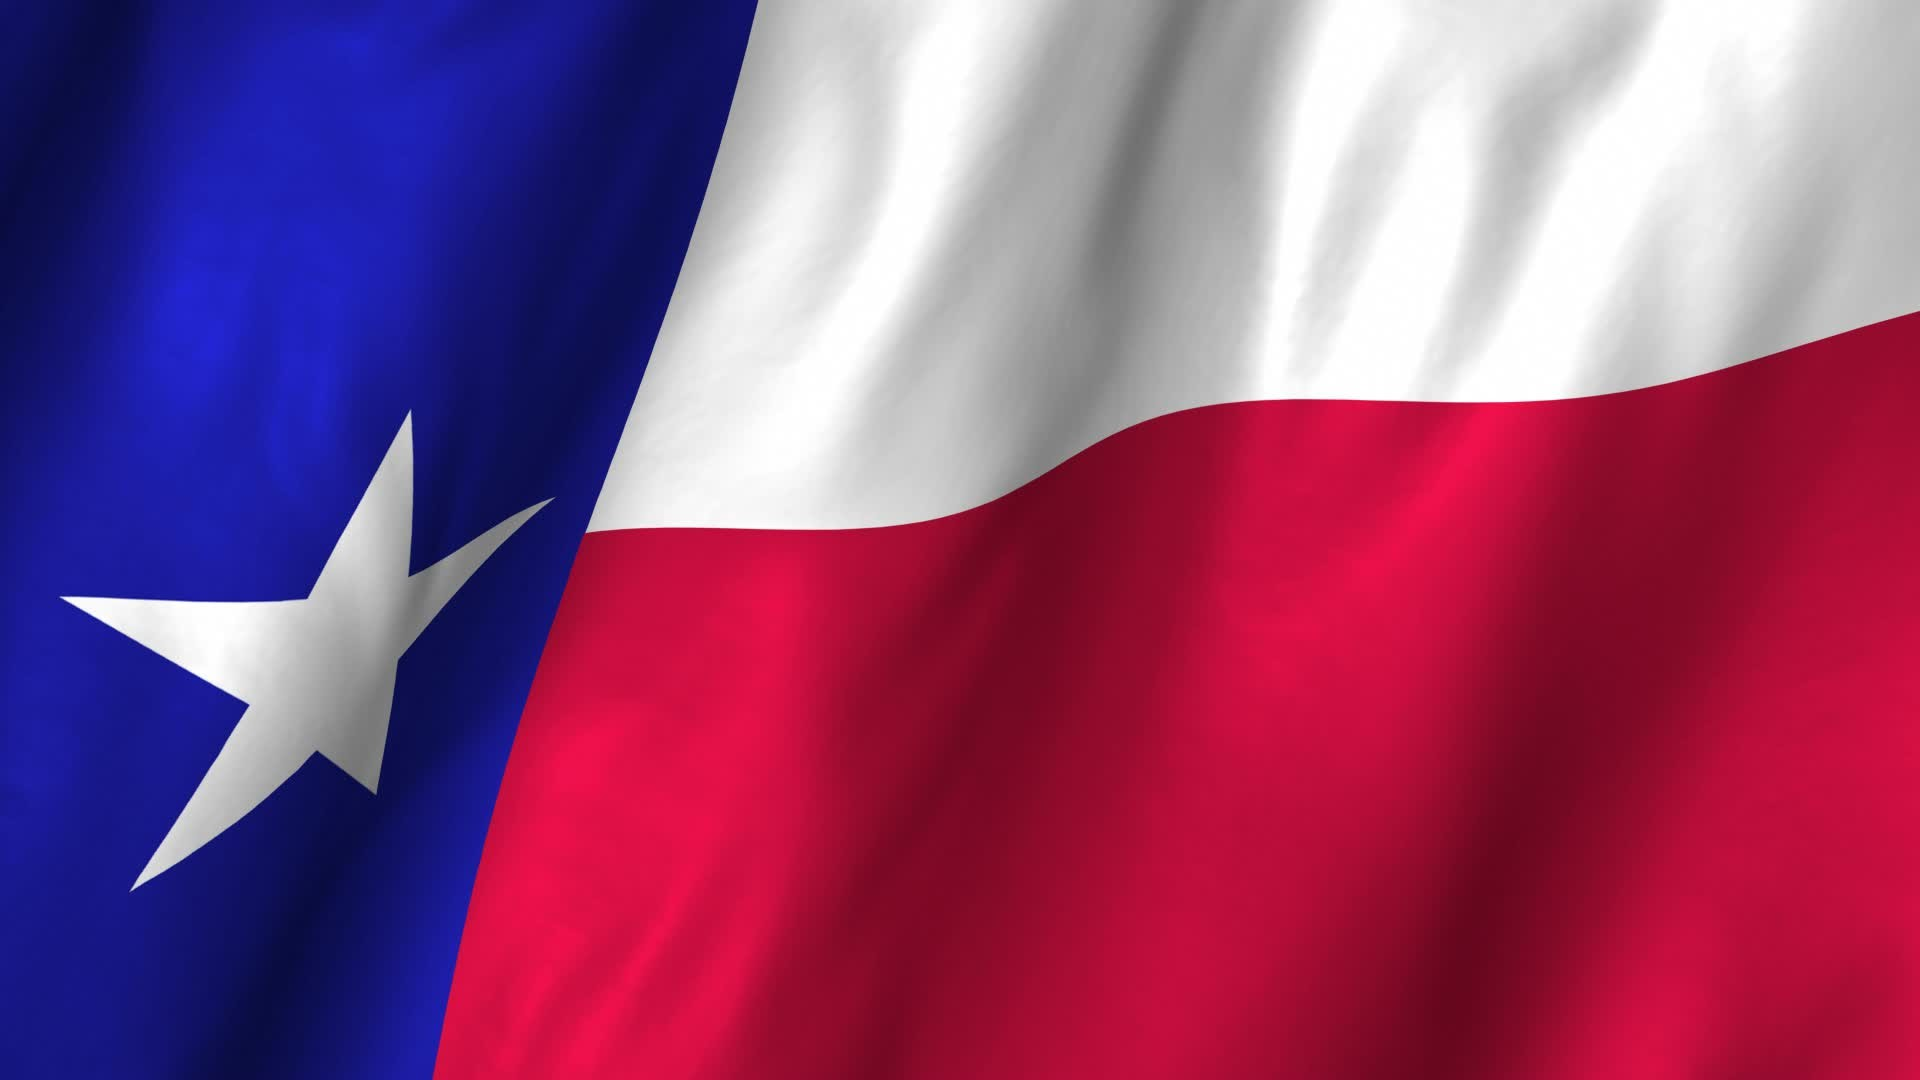 1920x1080 YH.88YH Texas Flag Images - NMgnCP PC Gallery